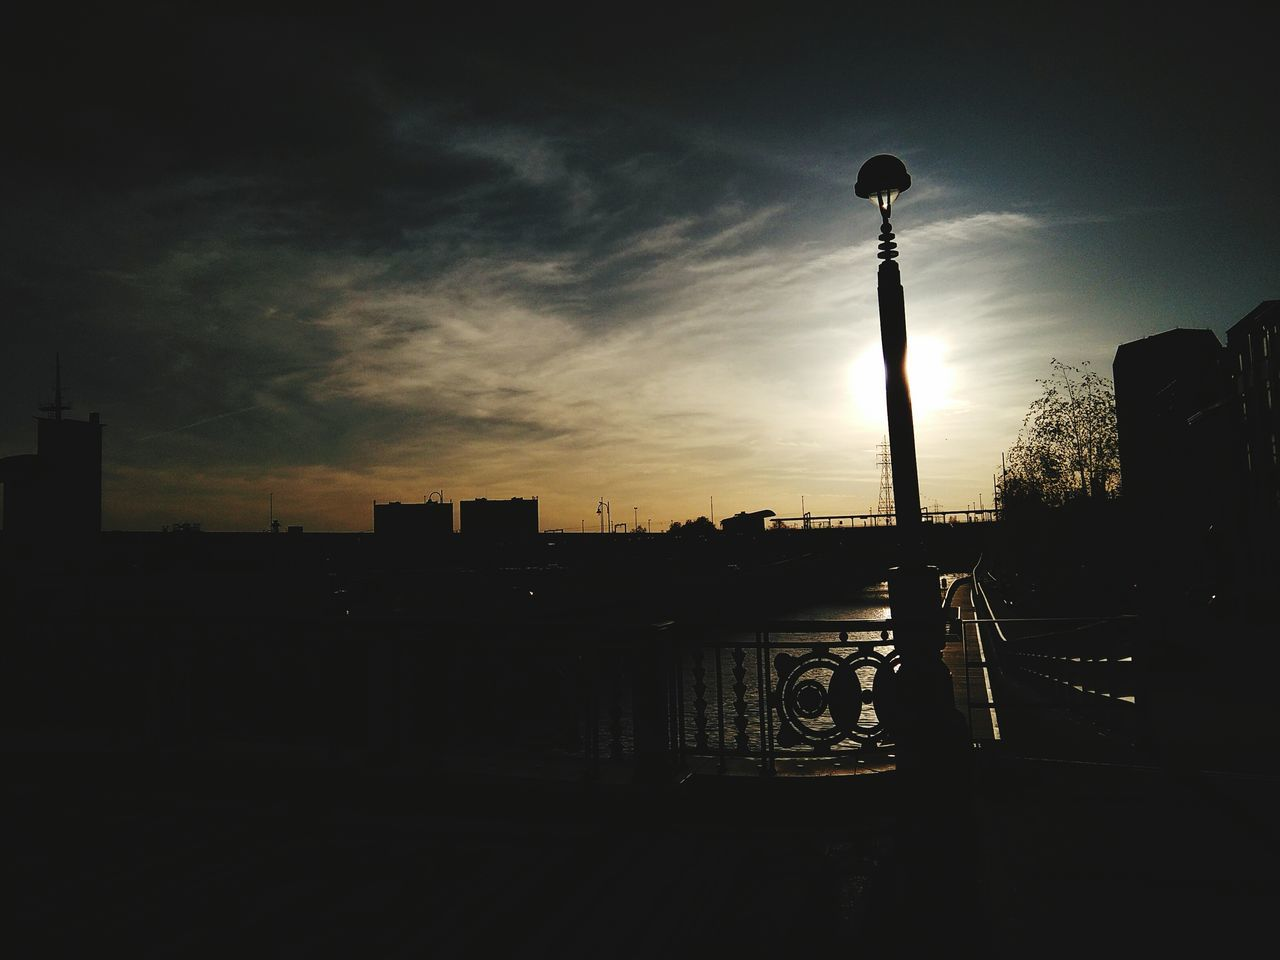 Sunset View Architecture Enjoying Life Charleroi, Belgium Belgium. Belgique. Belgie. Belgien. Etc. Sunlight Don't Jump Sunset_collection Hello World с фильтром With Filter Avec Filtré Sunset Streetphotography Checking In City